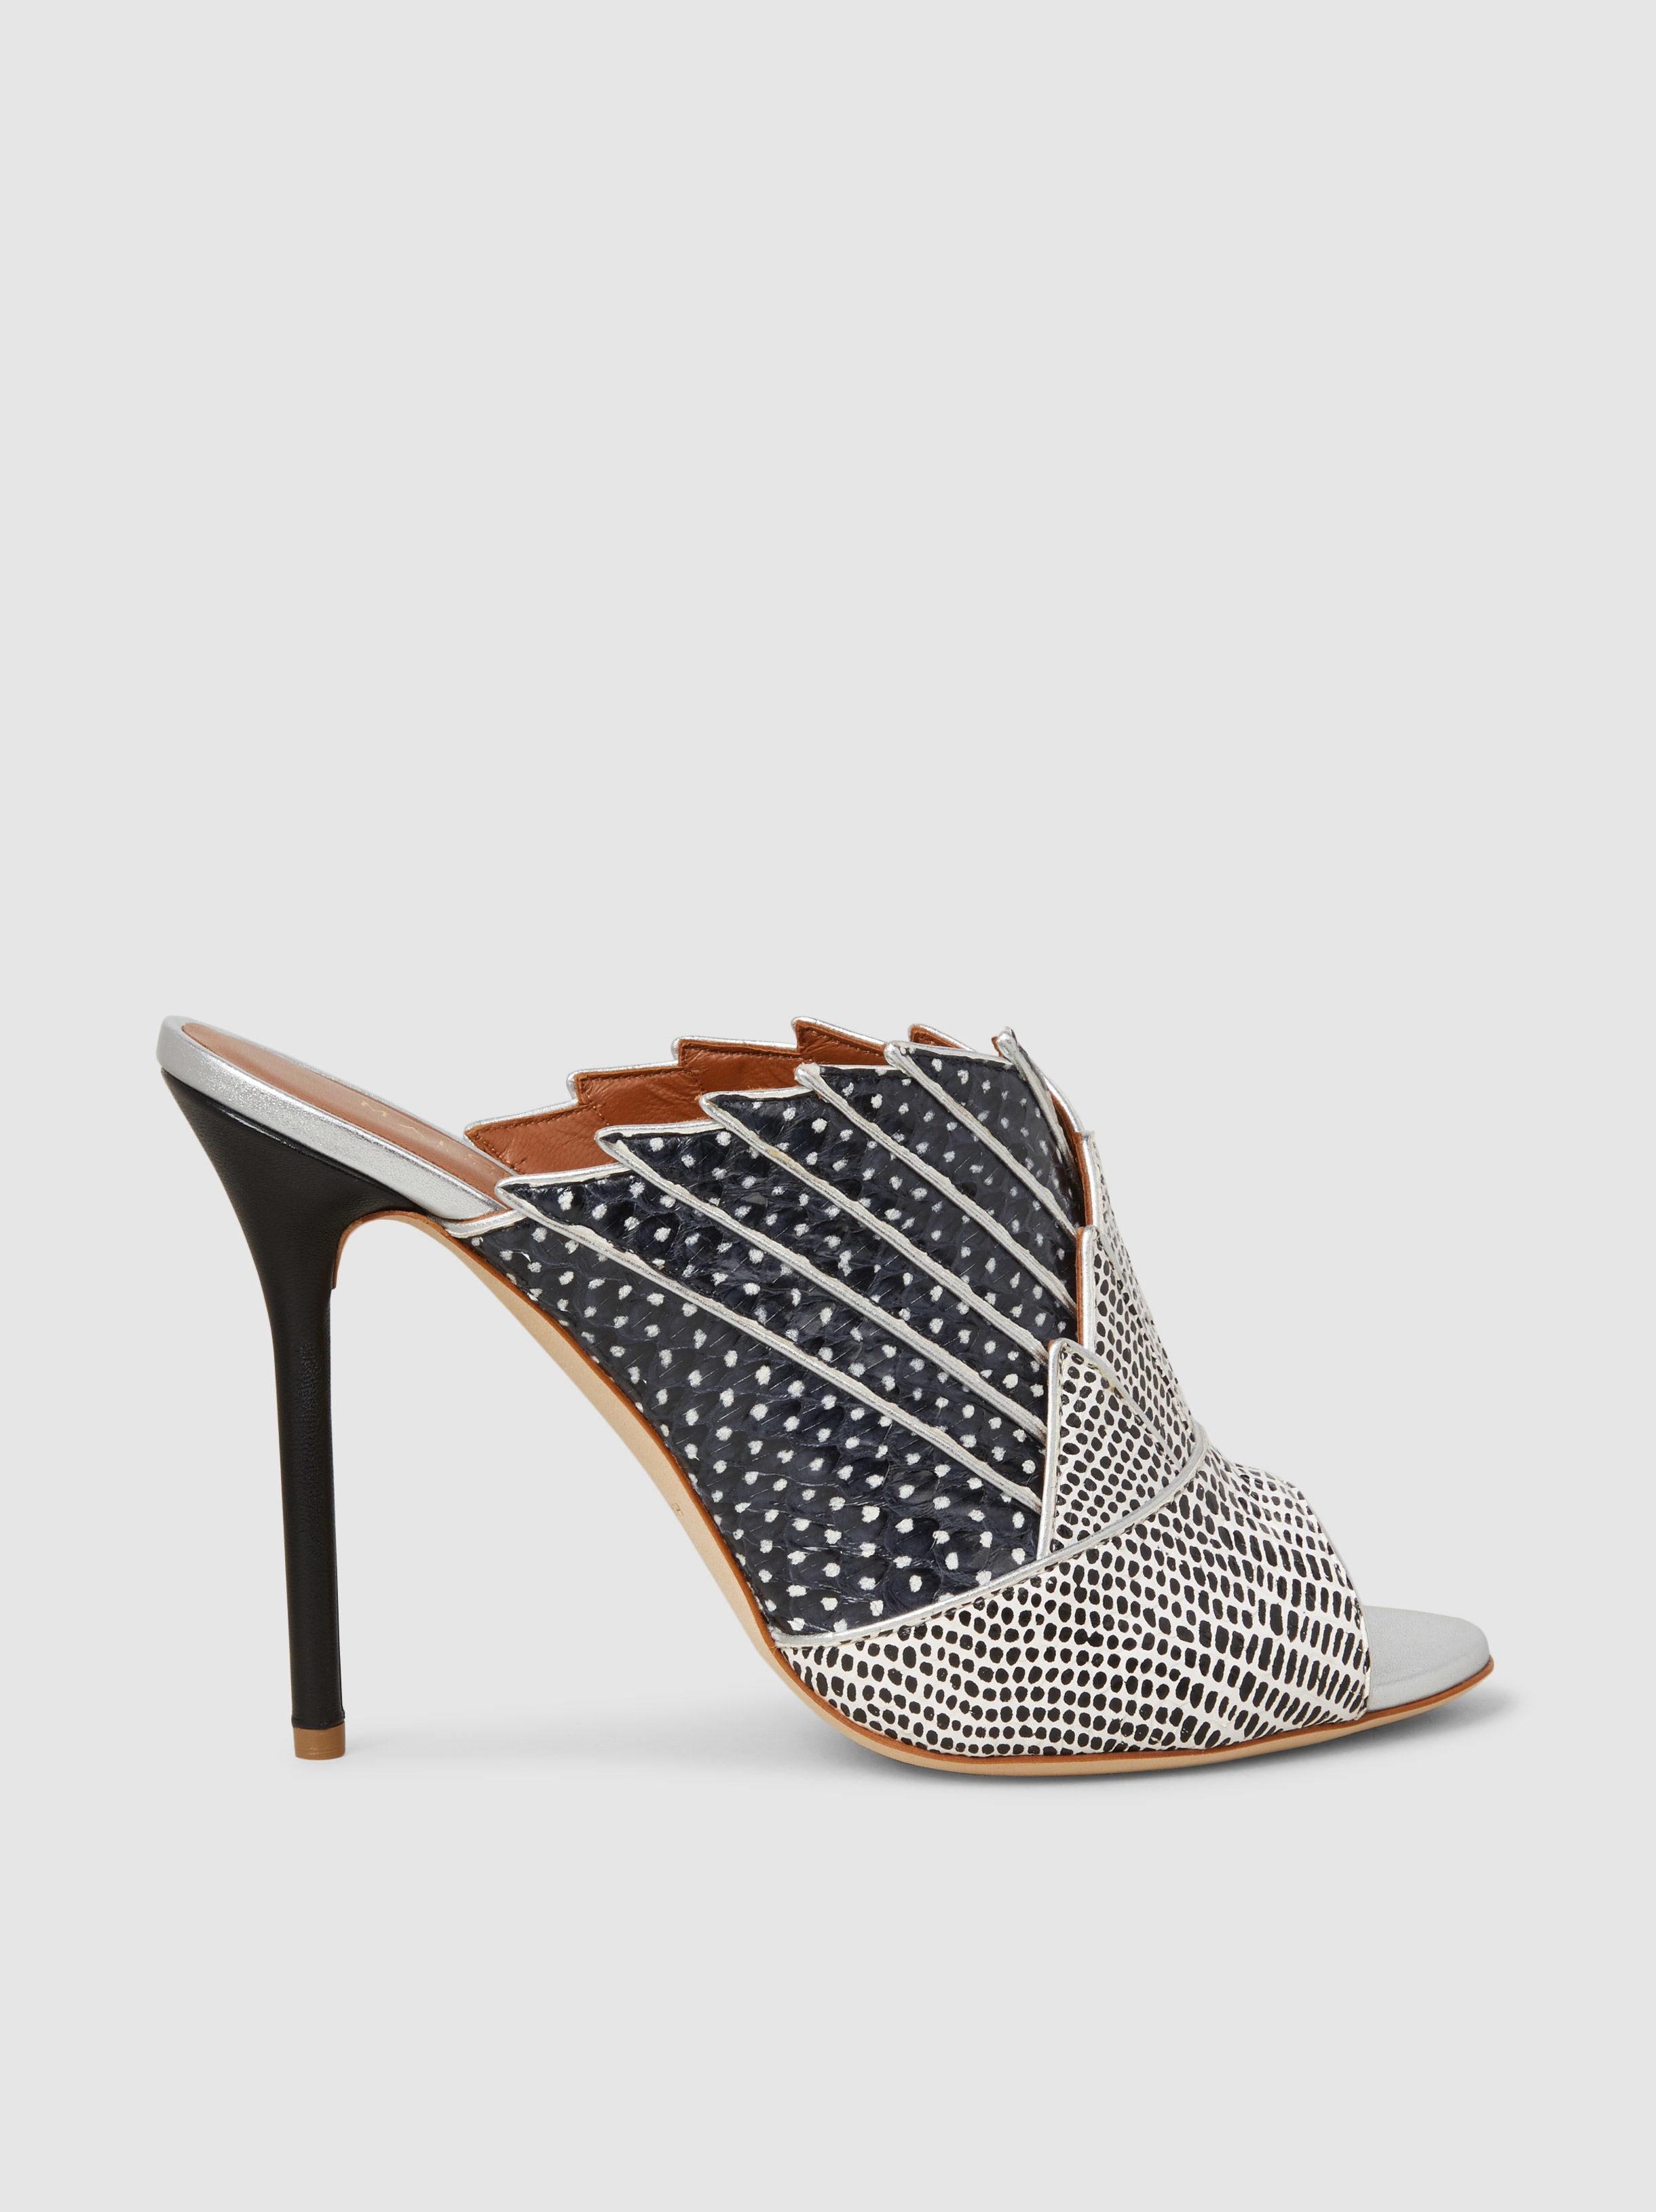 Donna Elaphe Mules Malone Souliers